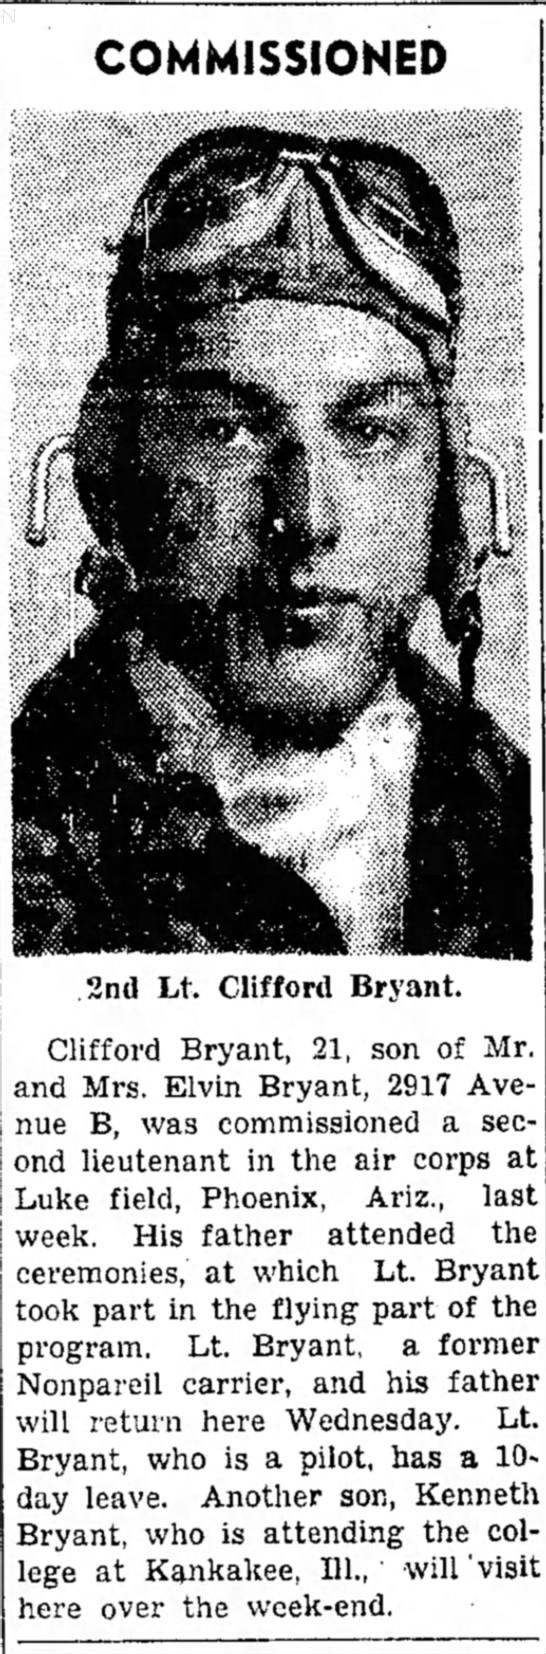 Clifford Bryant commissioned as Second Lieutenant in Air Corp - L. were the was COMMISSIONED Luke field,...